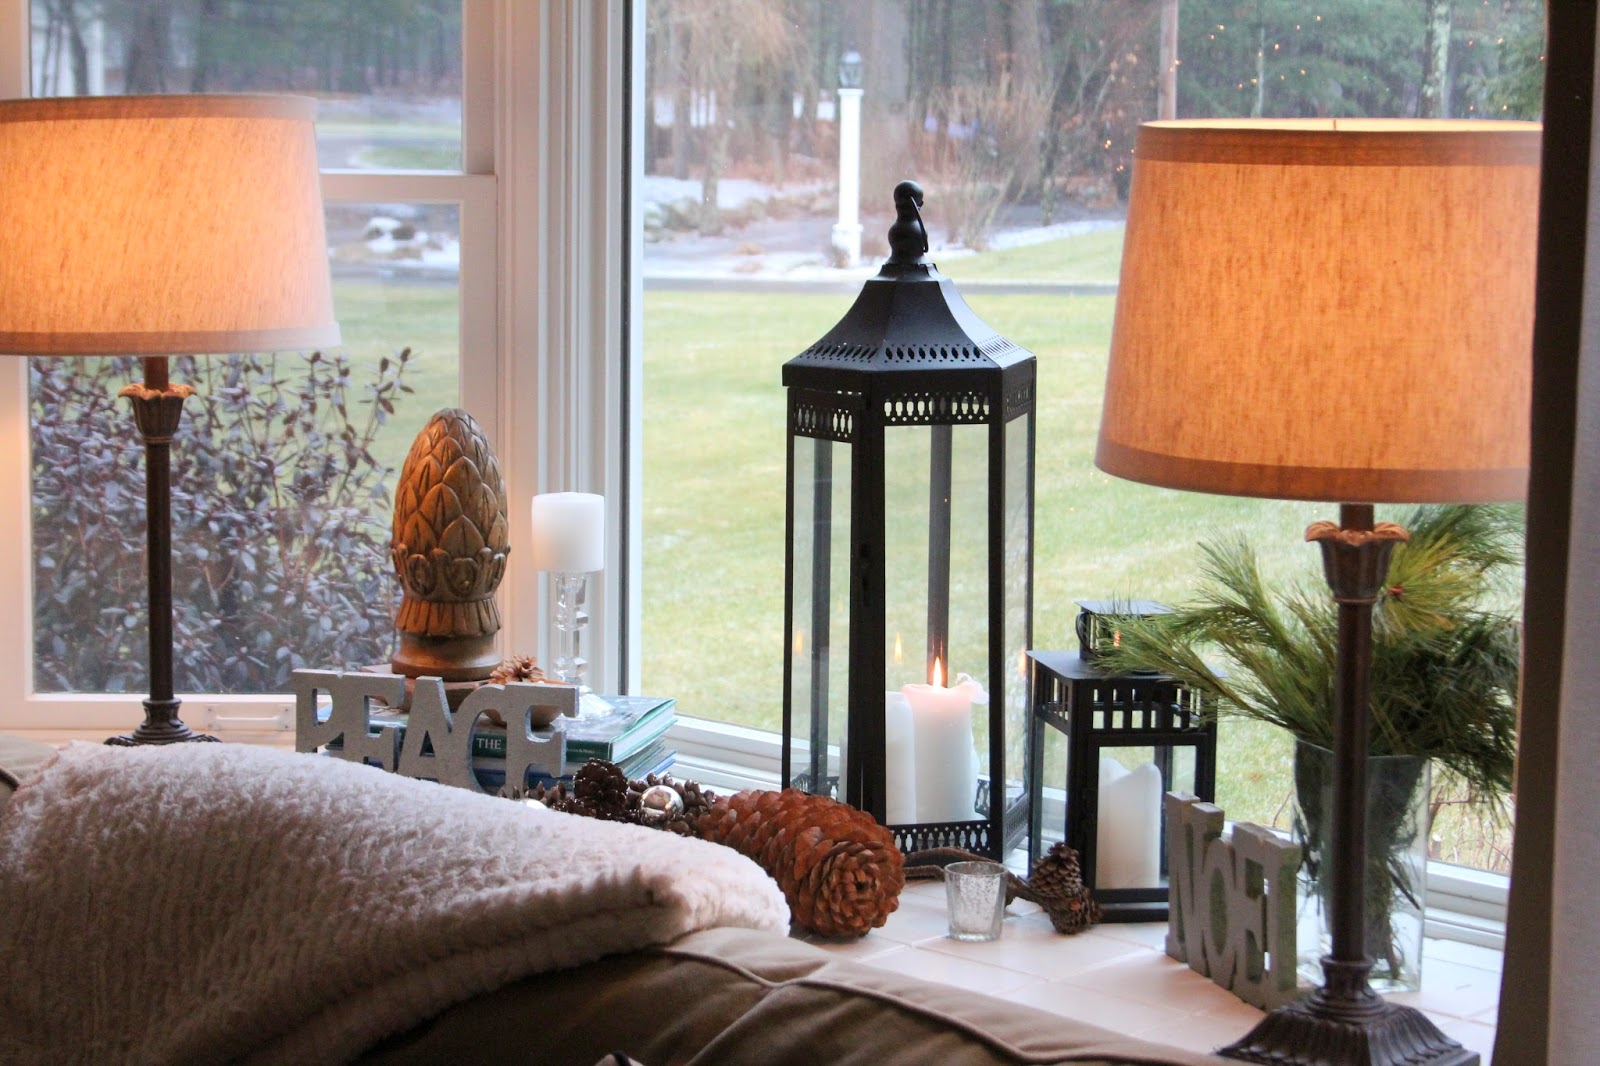 Shine your light styling bay window sills - Bay window decorating ideas ...